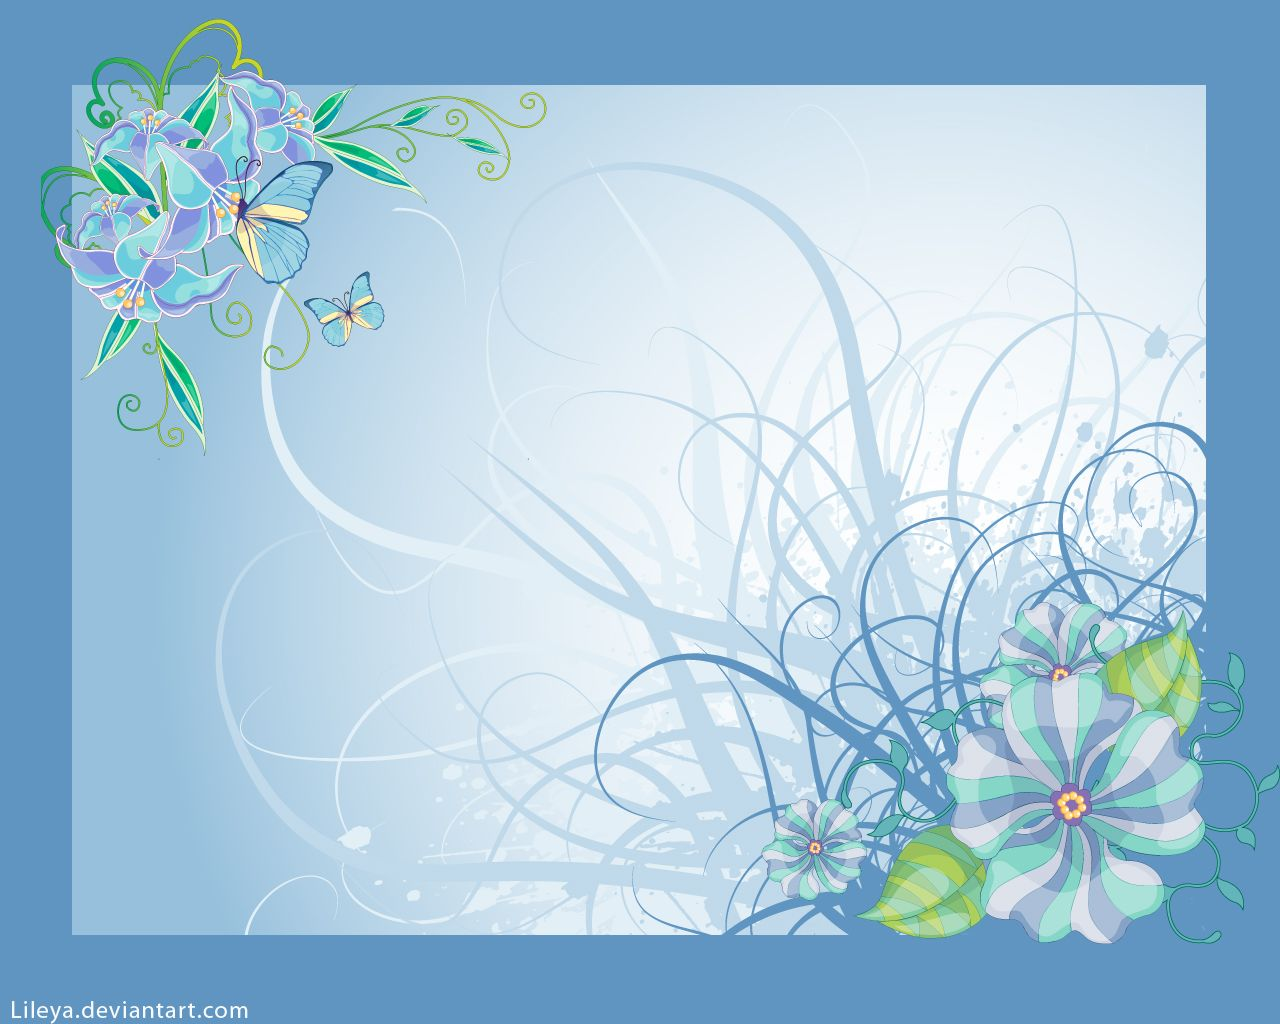 Flower Wallpaper Backgrounds hd x abstract flowers vector